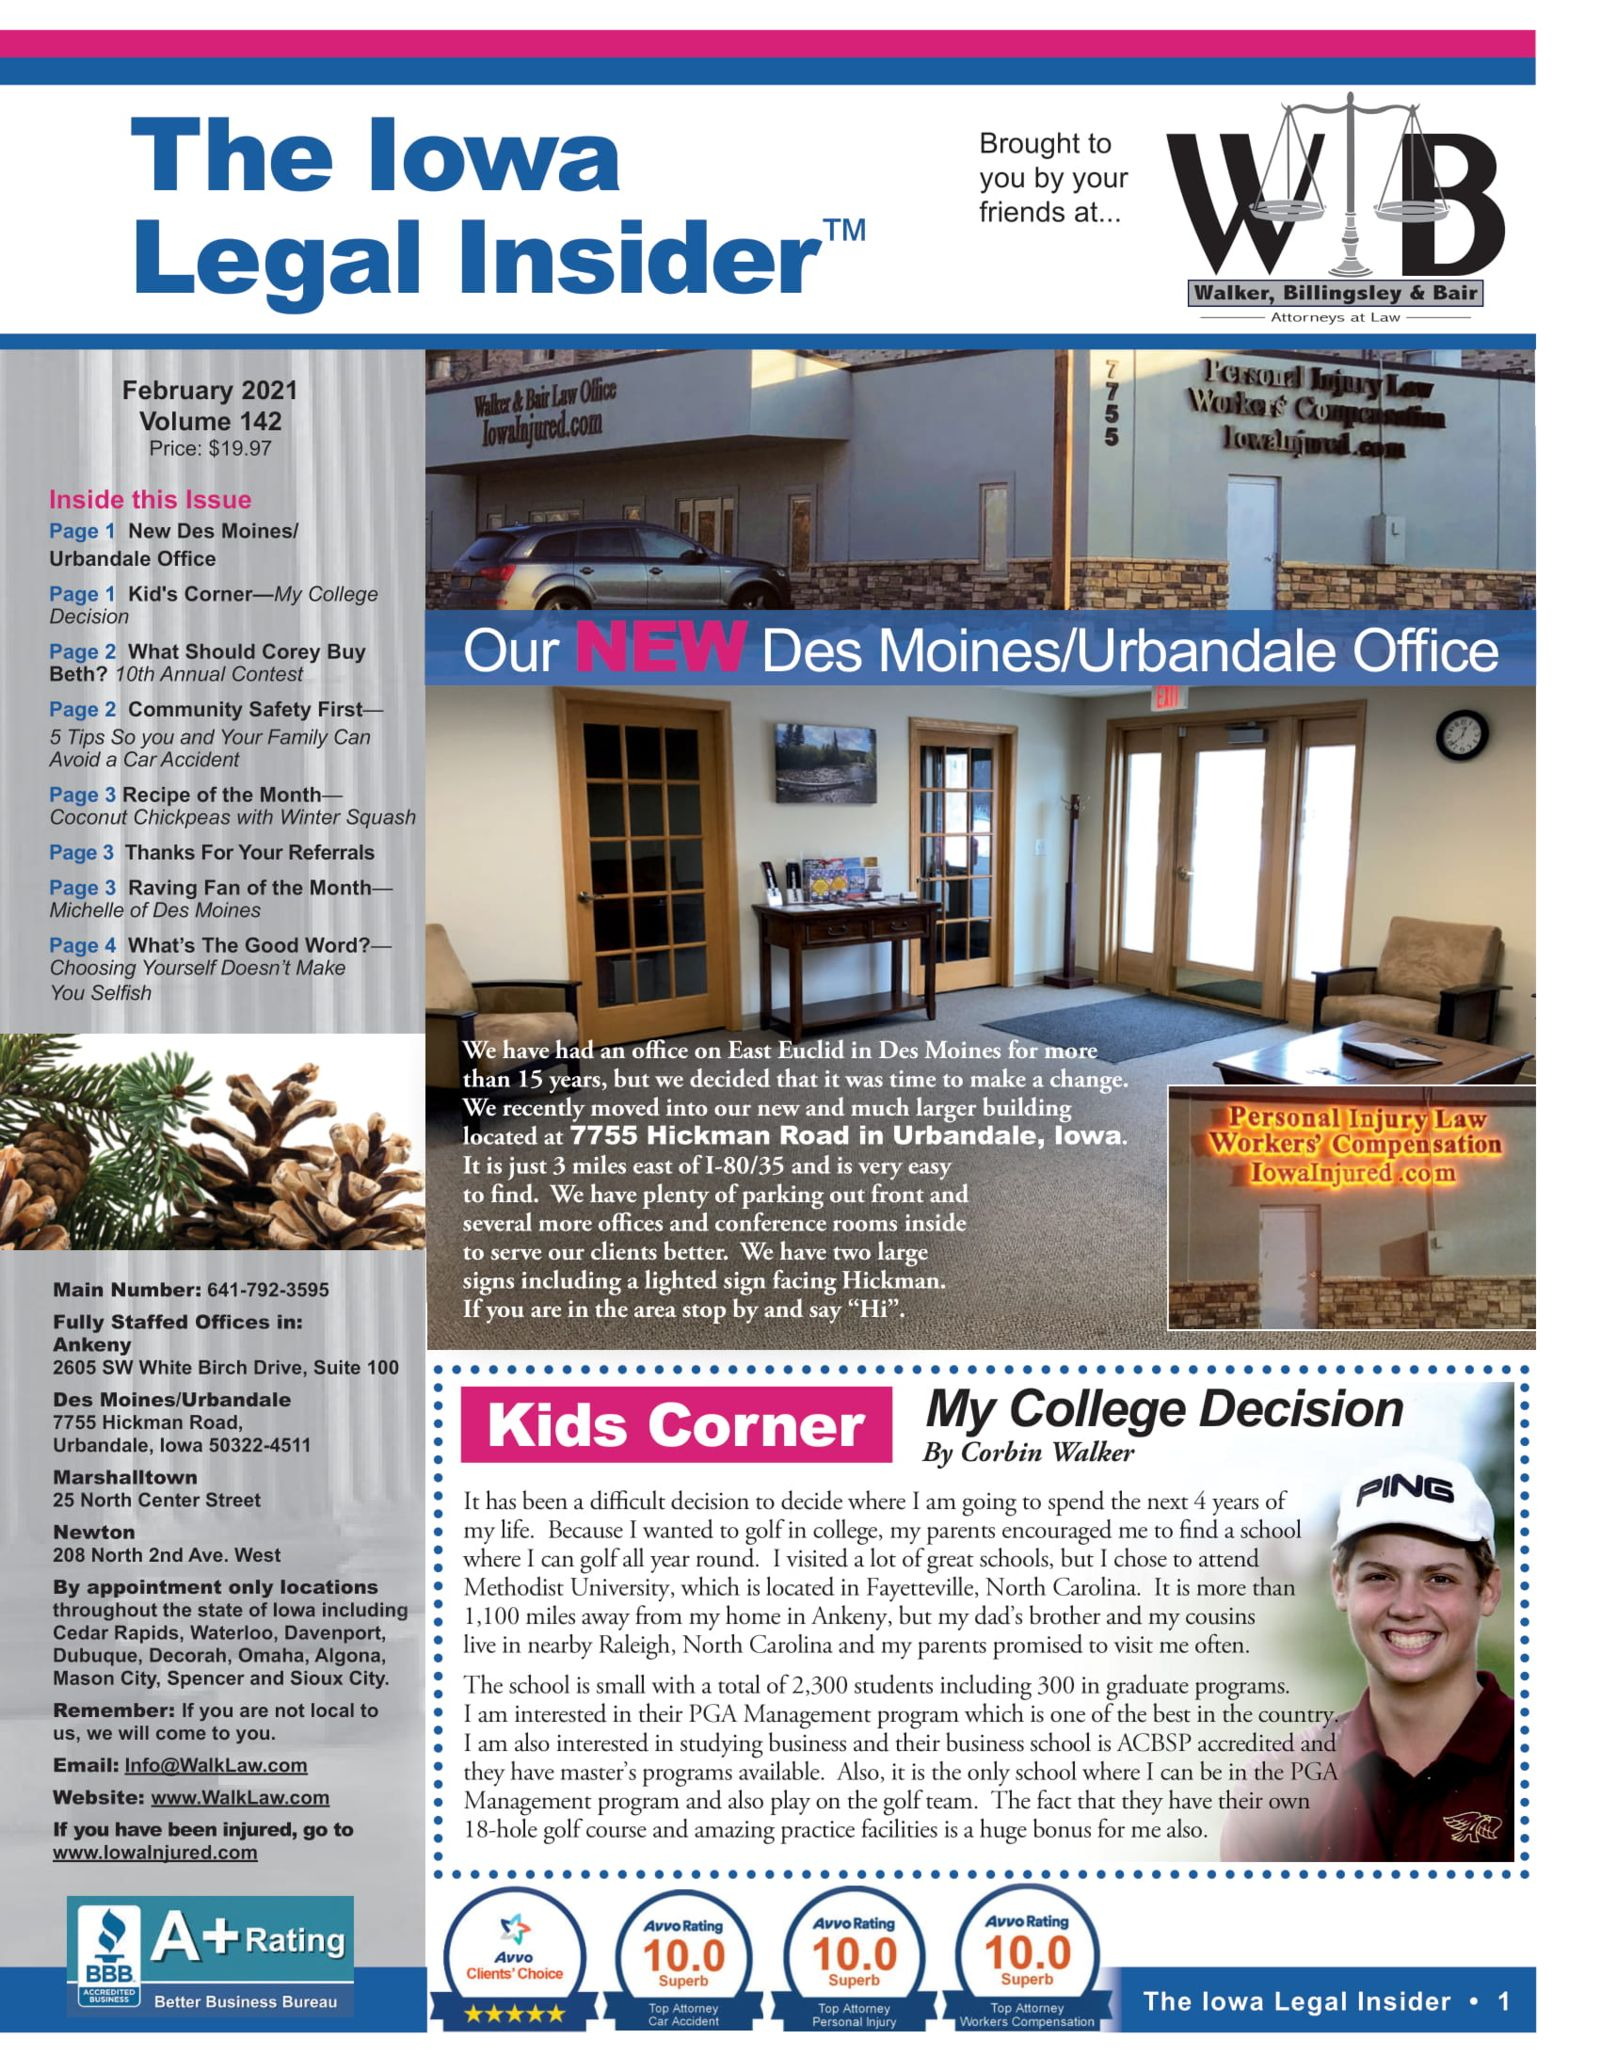 The Iowa legal insider our new des moines office